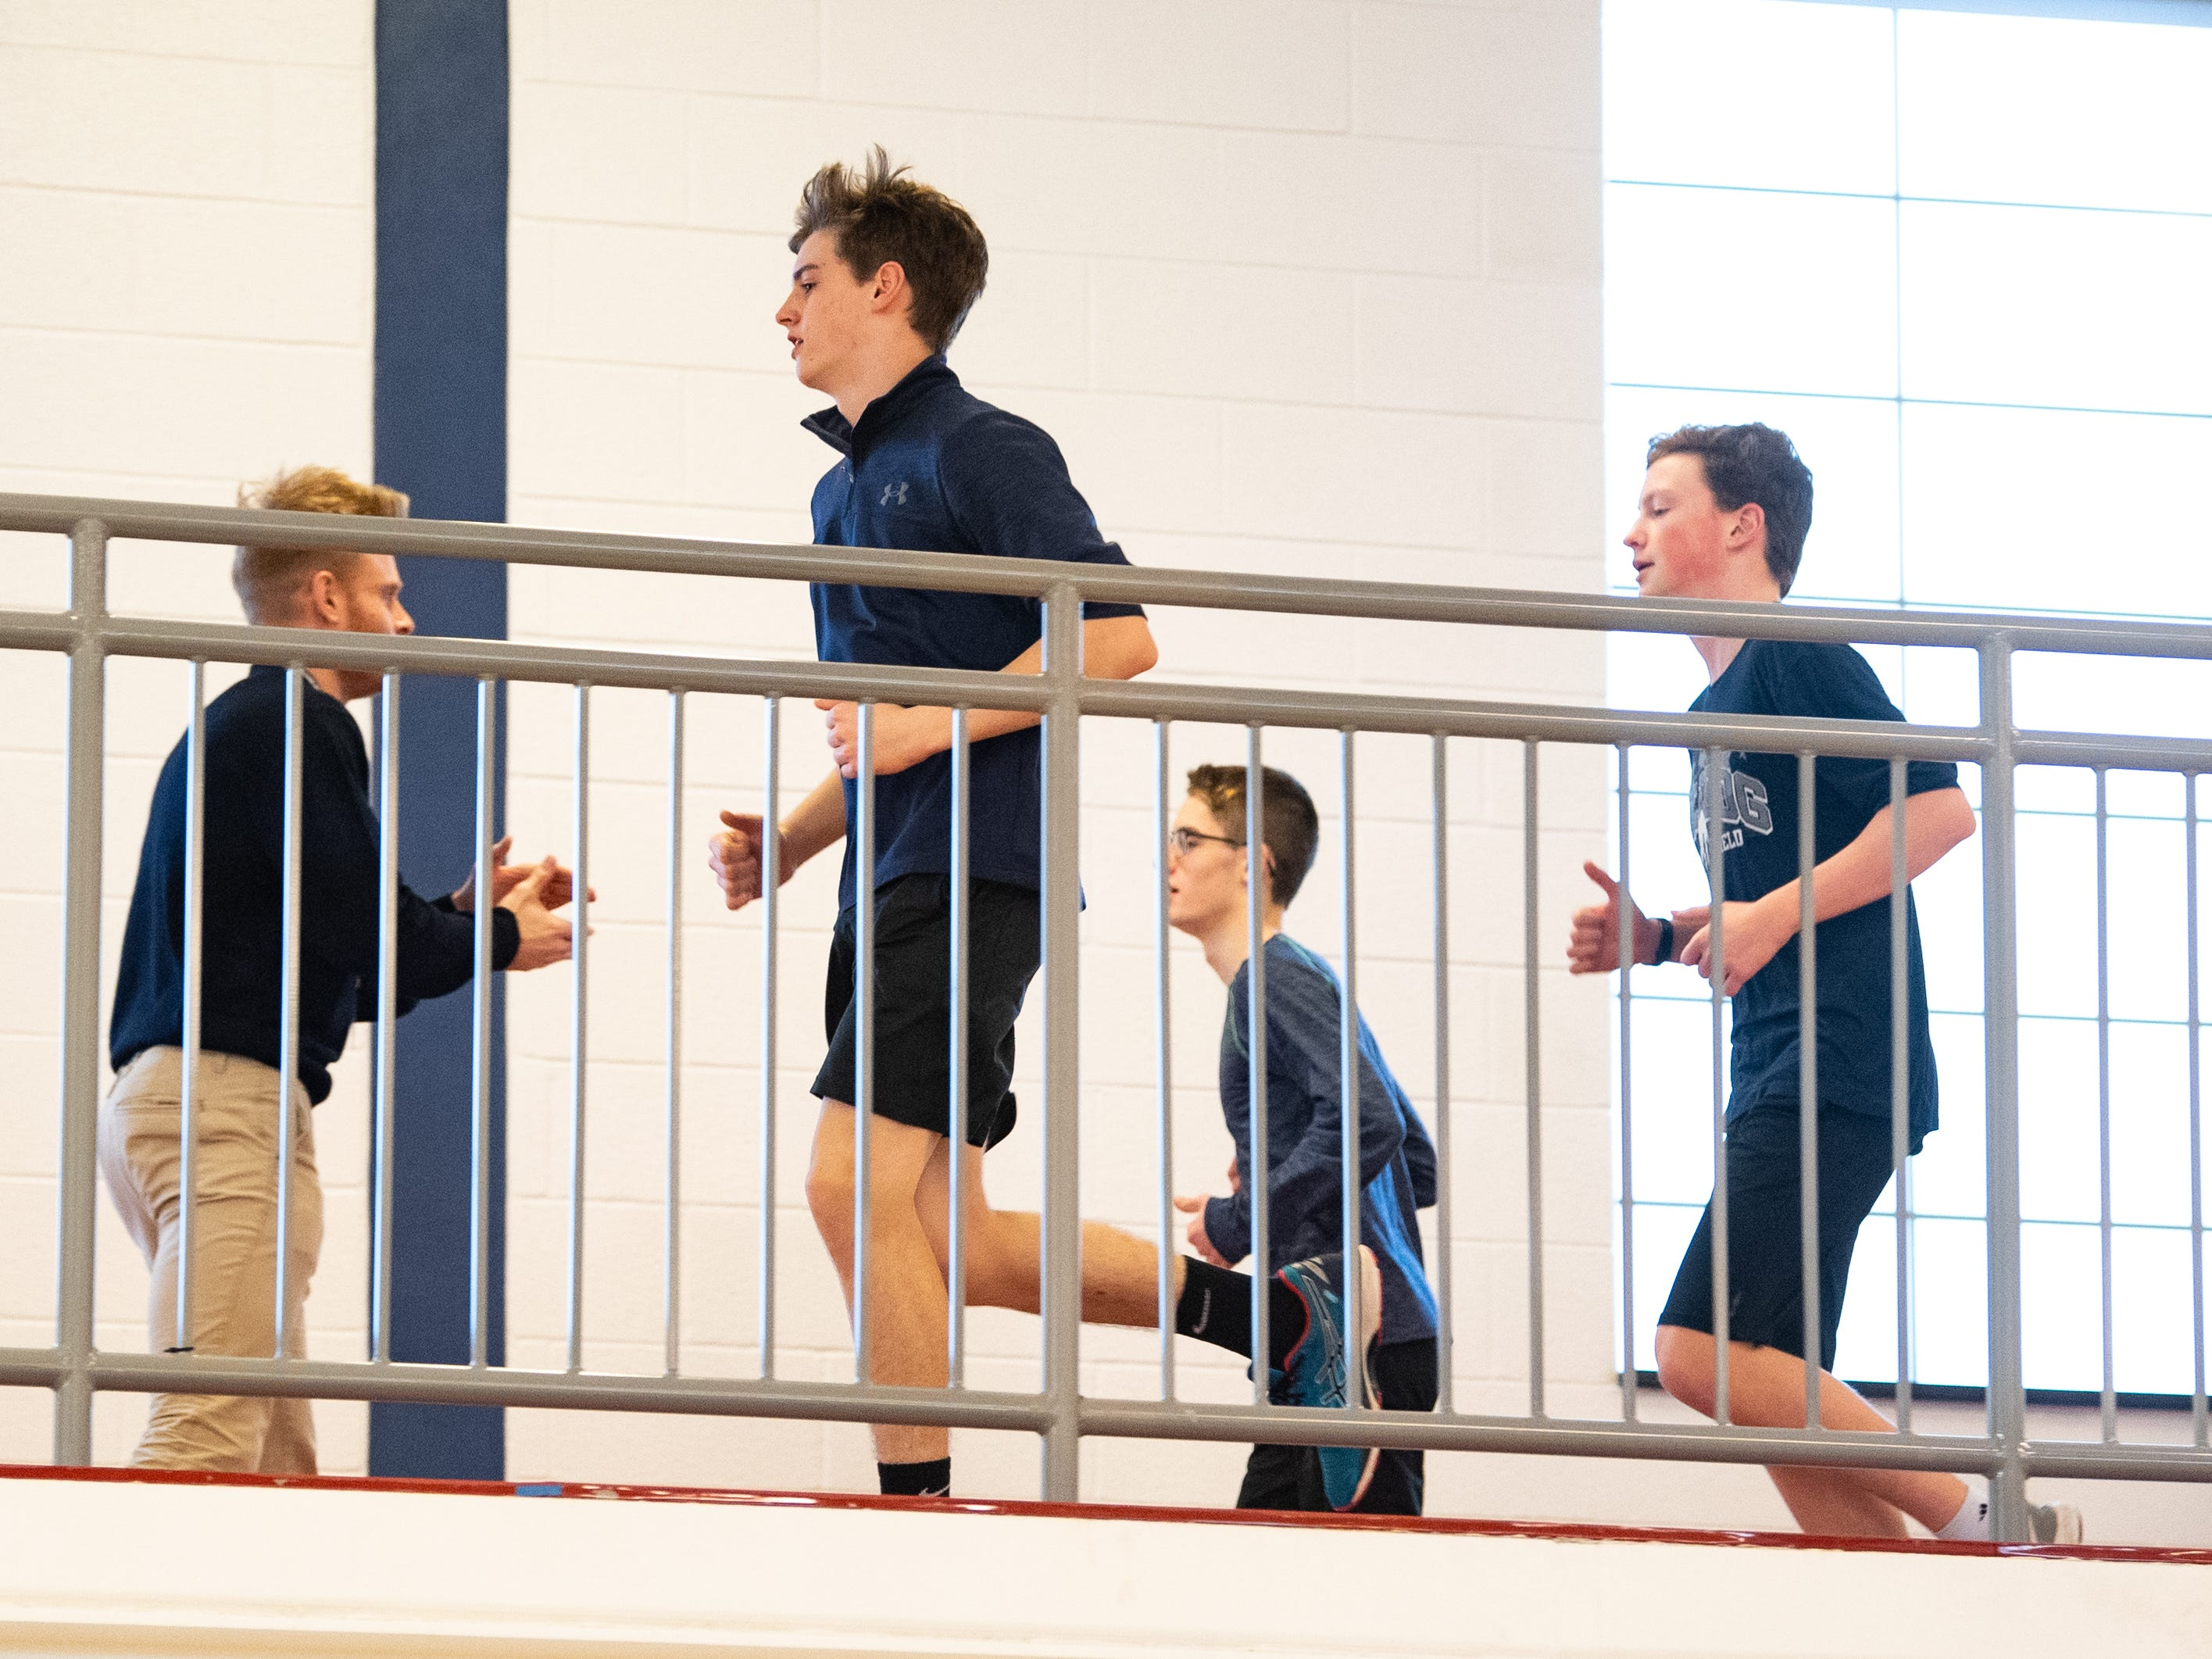 The West York track and field team jogs on the indoor track above the gym, March 5, 2019.